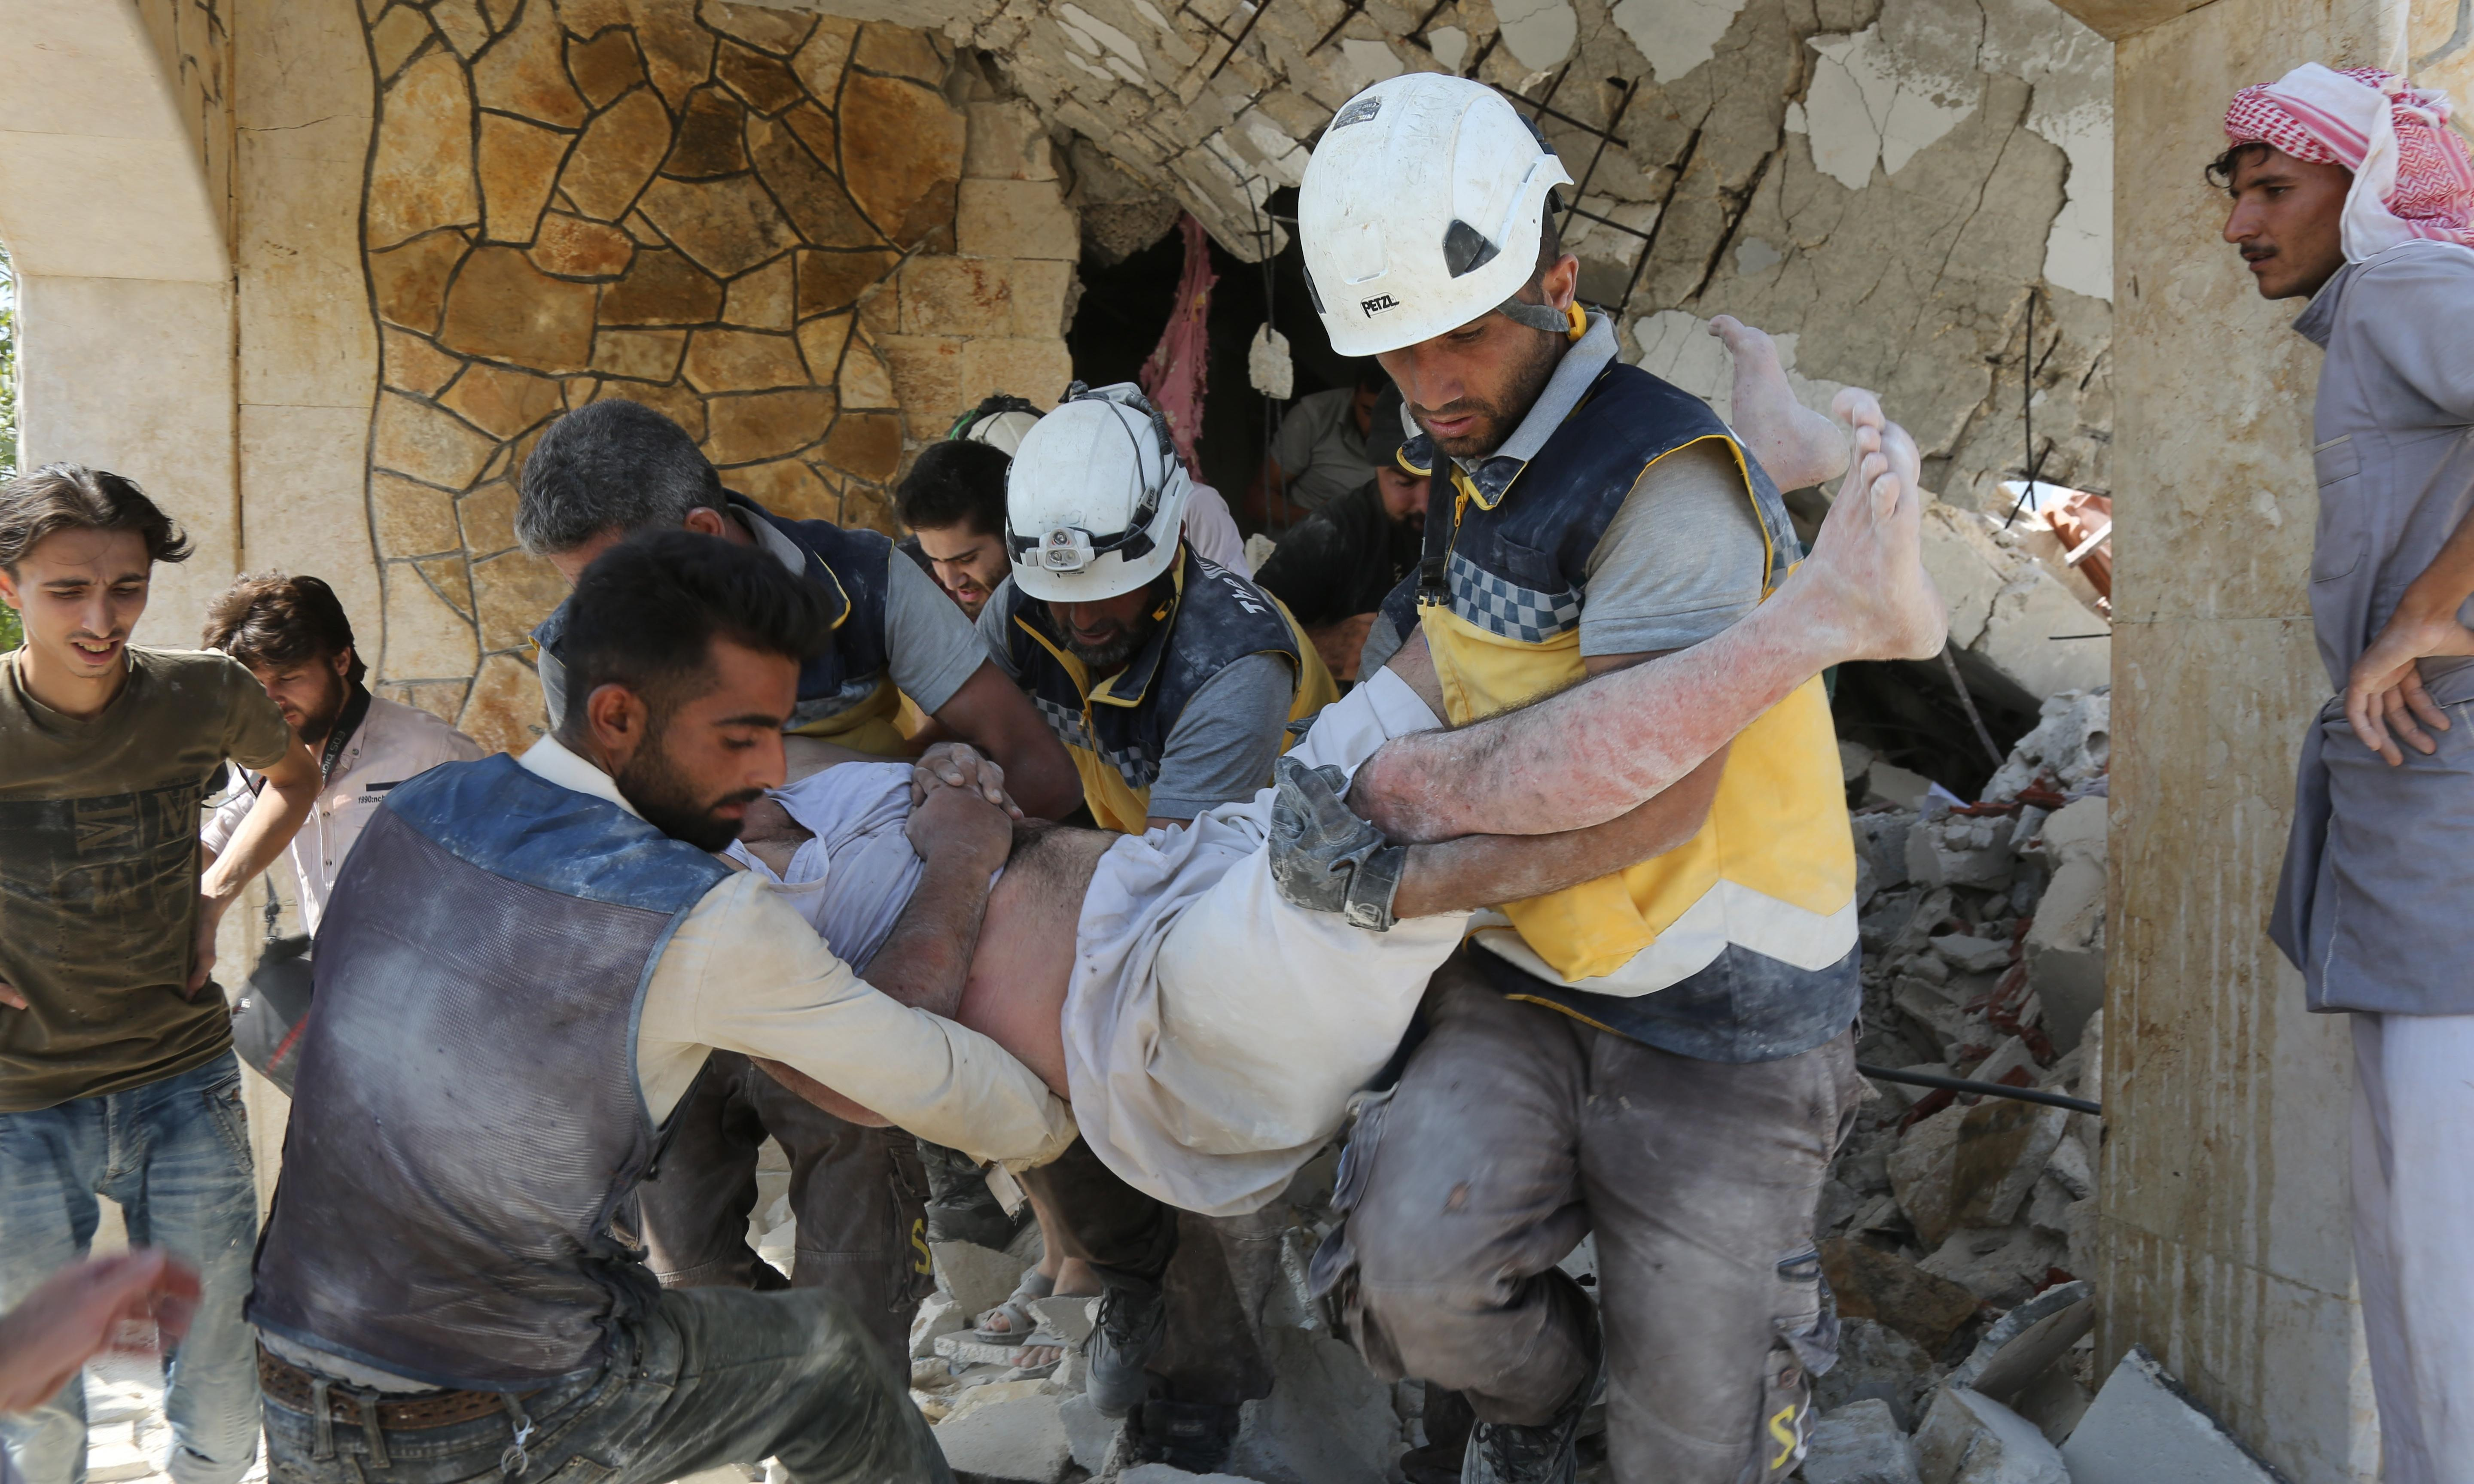 I've spent years reporting from Syria. The world has tuned out, but hope still exists